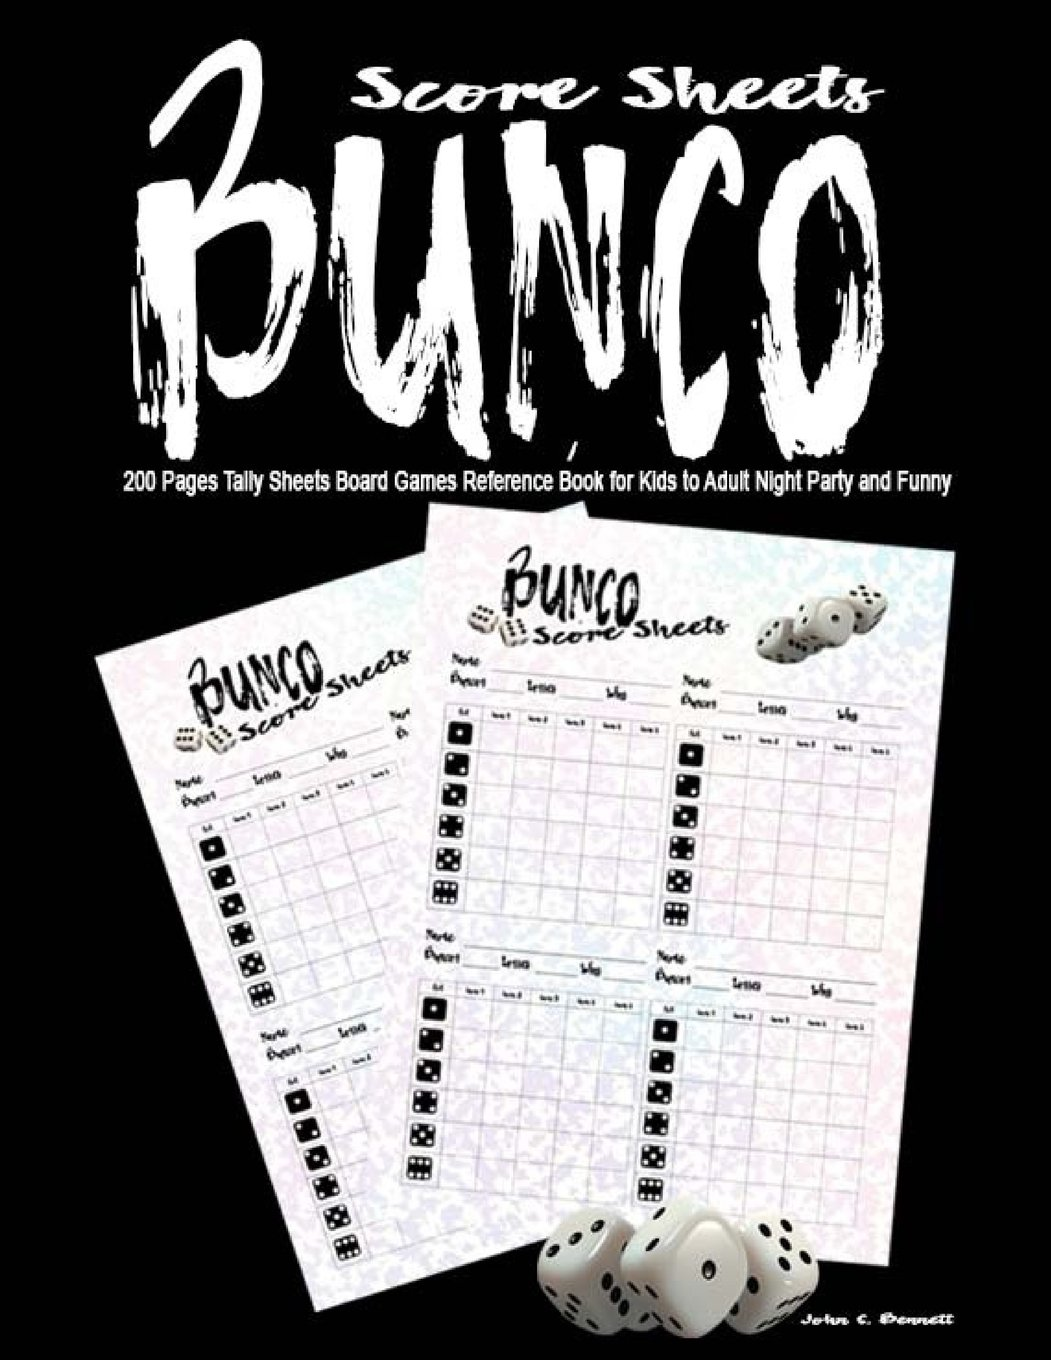 picture regarding Bunco Tally Sheets Printable named Bunco Rating Sheets: 200 Internet pages Tally Sheets Board Online games